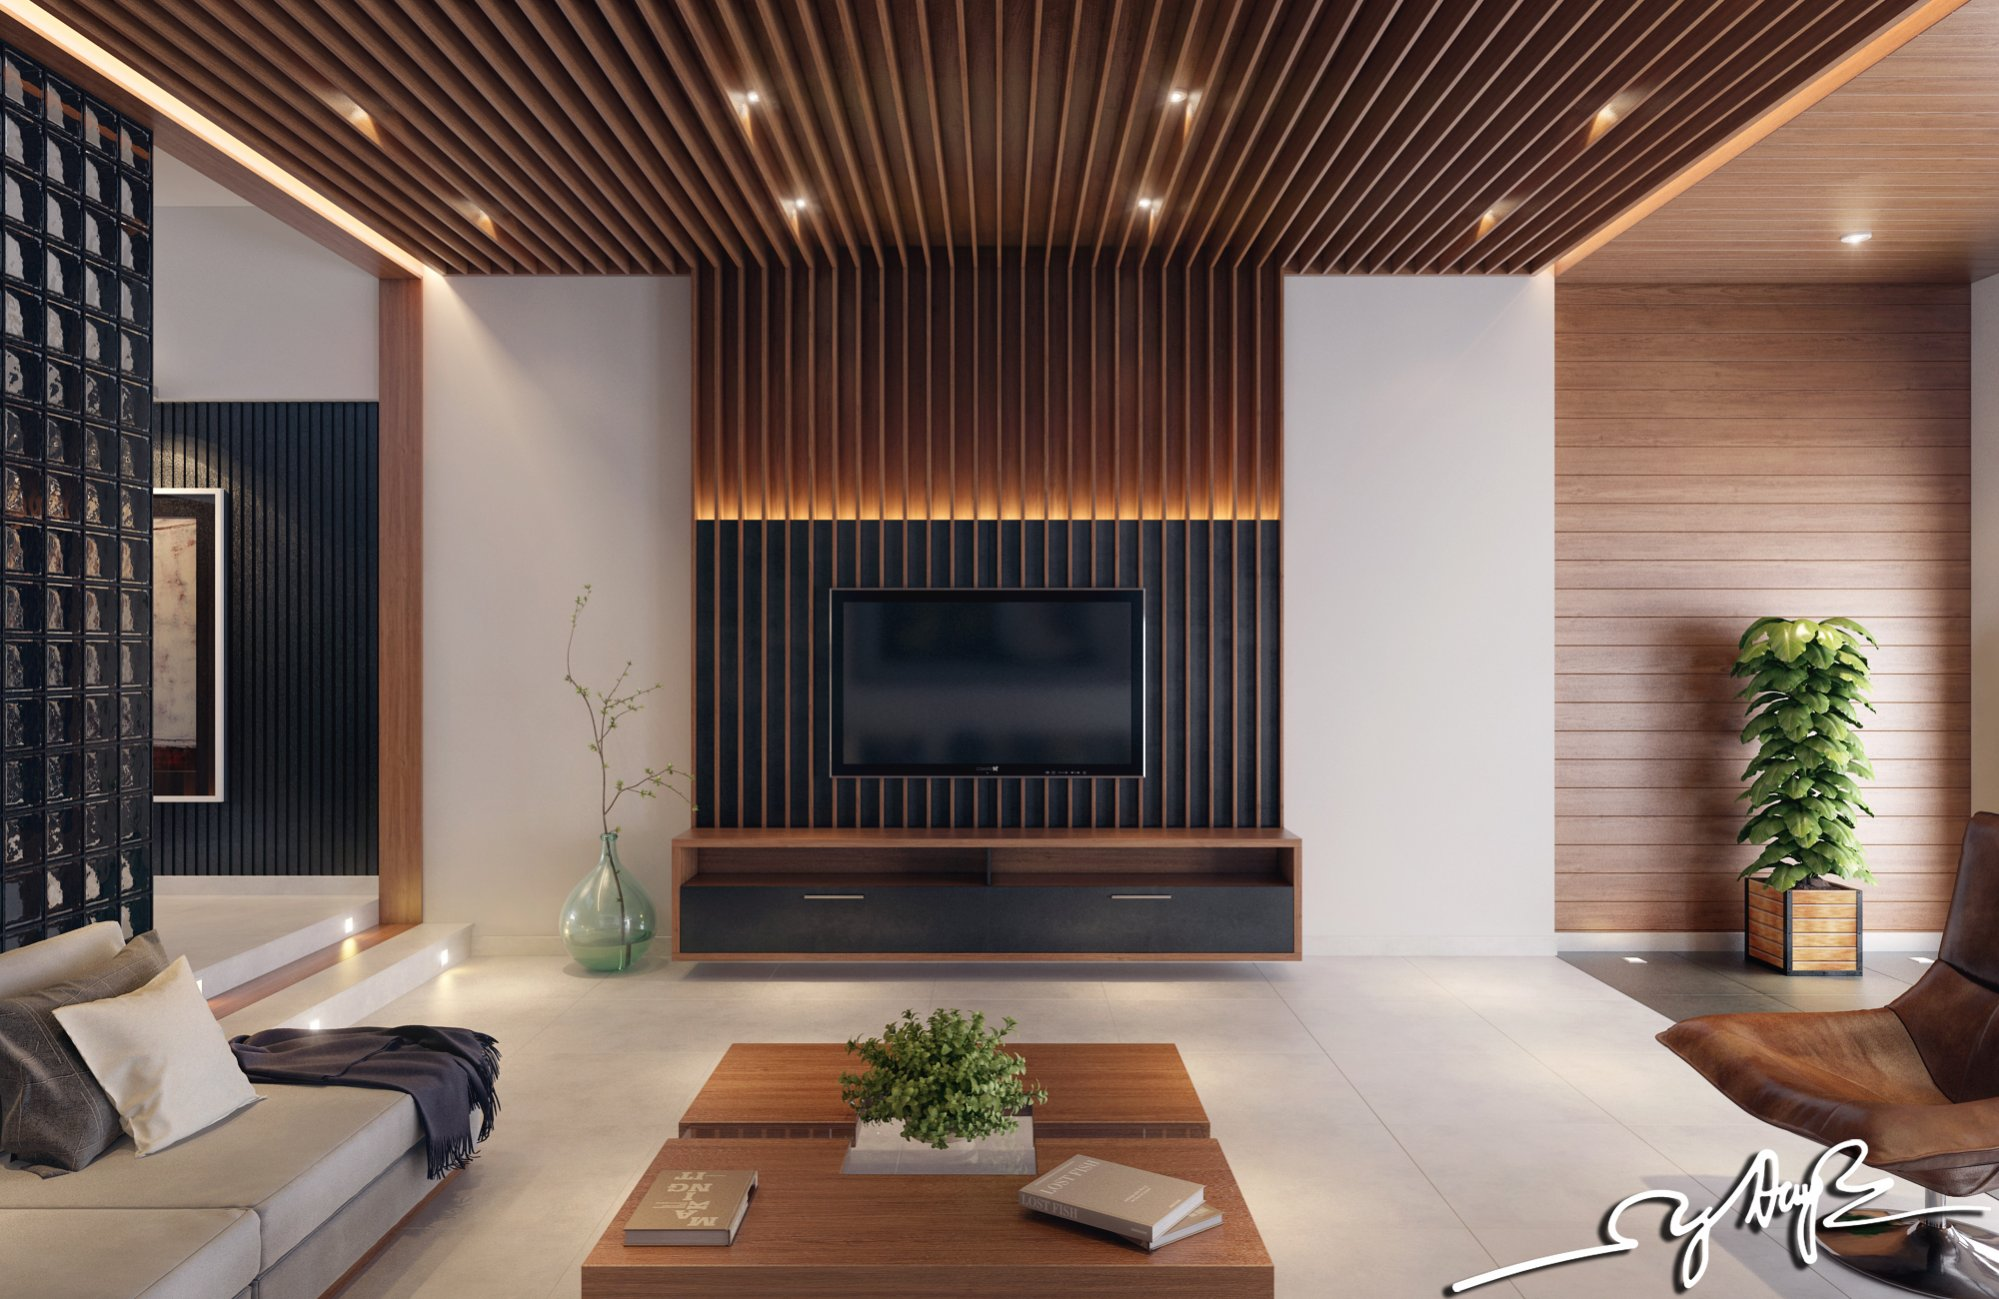 Wood Designs For Walls interior wall wood paneling amusing wooden panelling for interior walls Interior Design Close To Nature Rich Wood Themes And Indoor Vertical Gardens